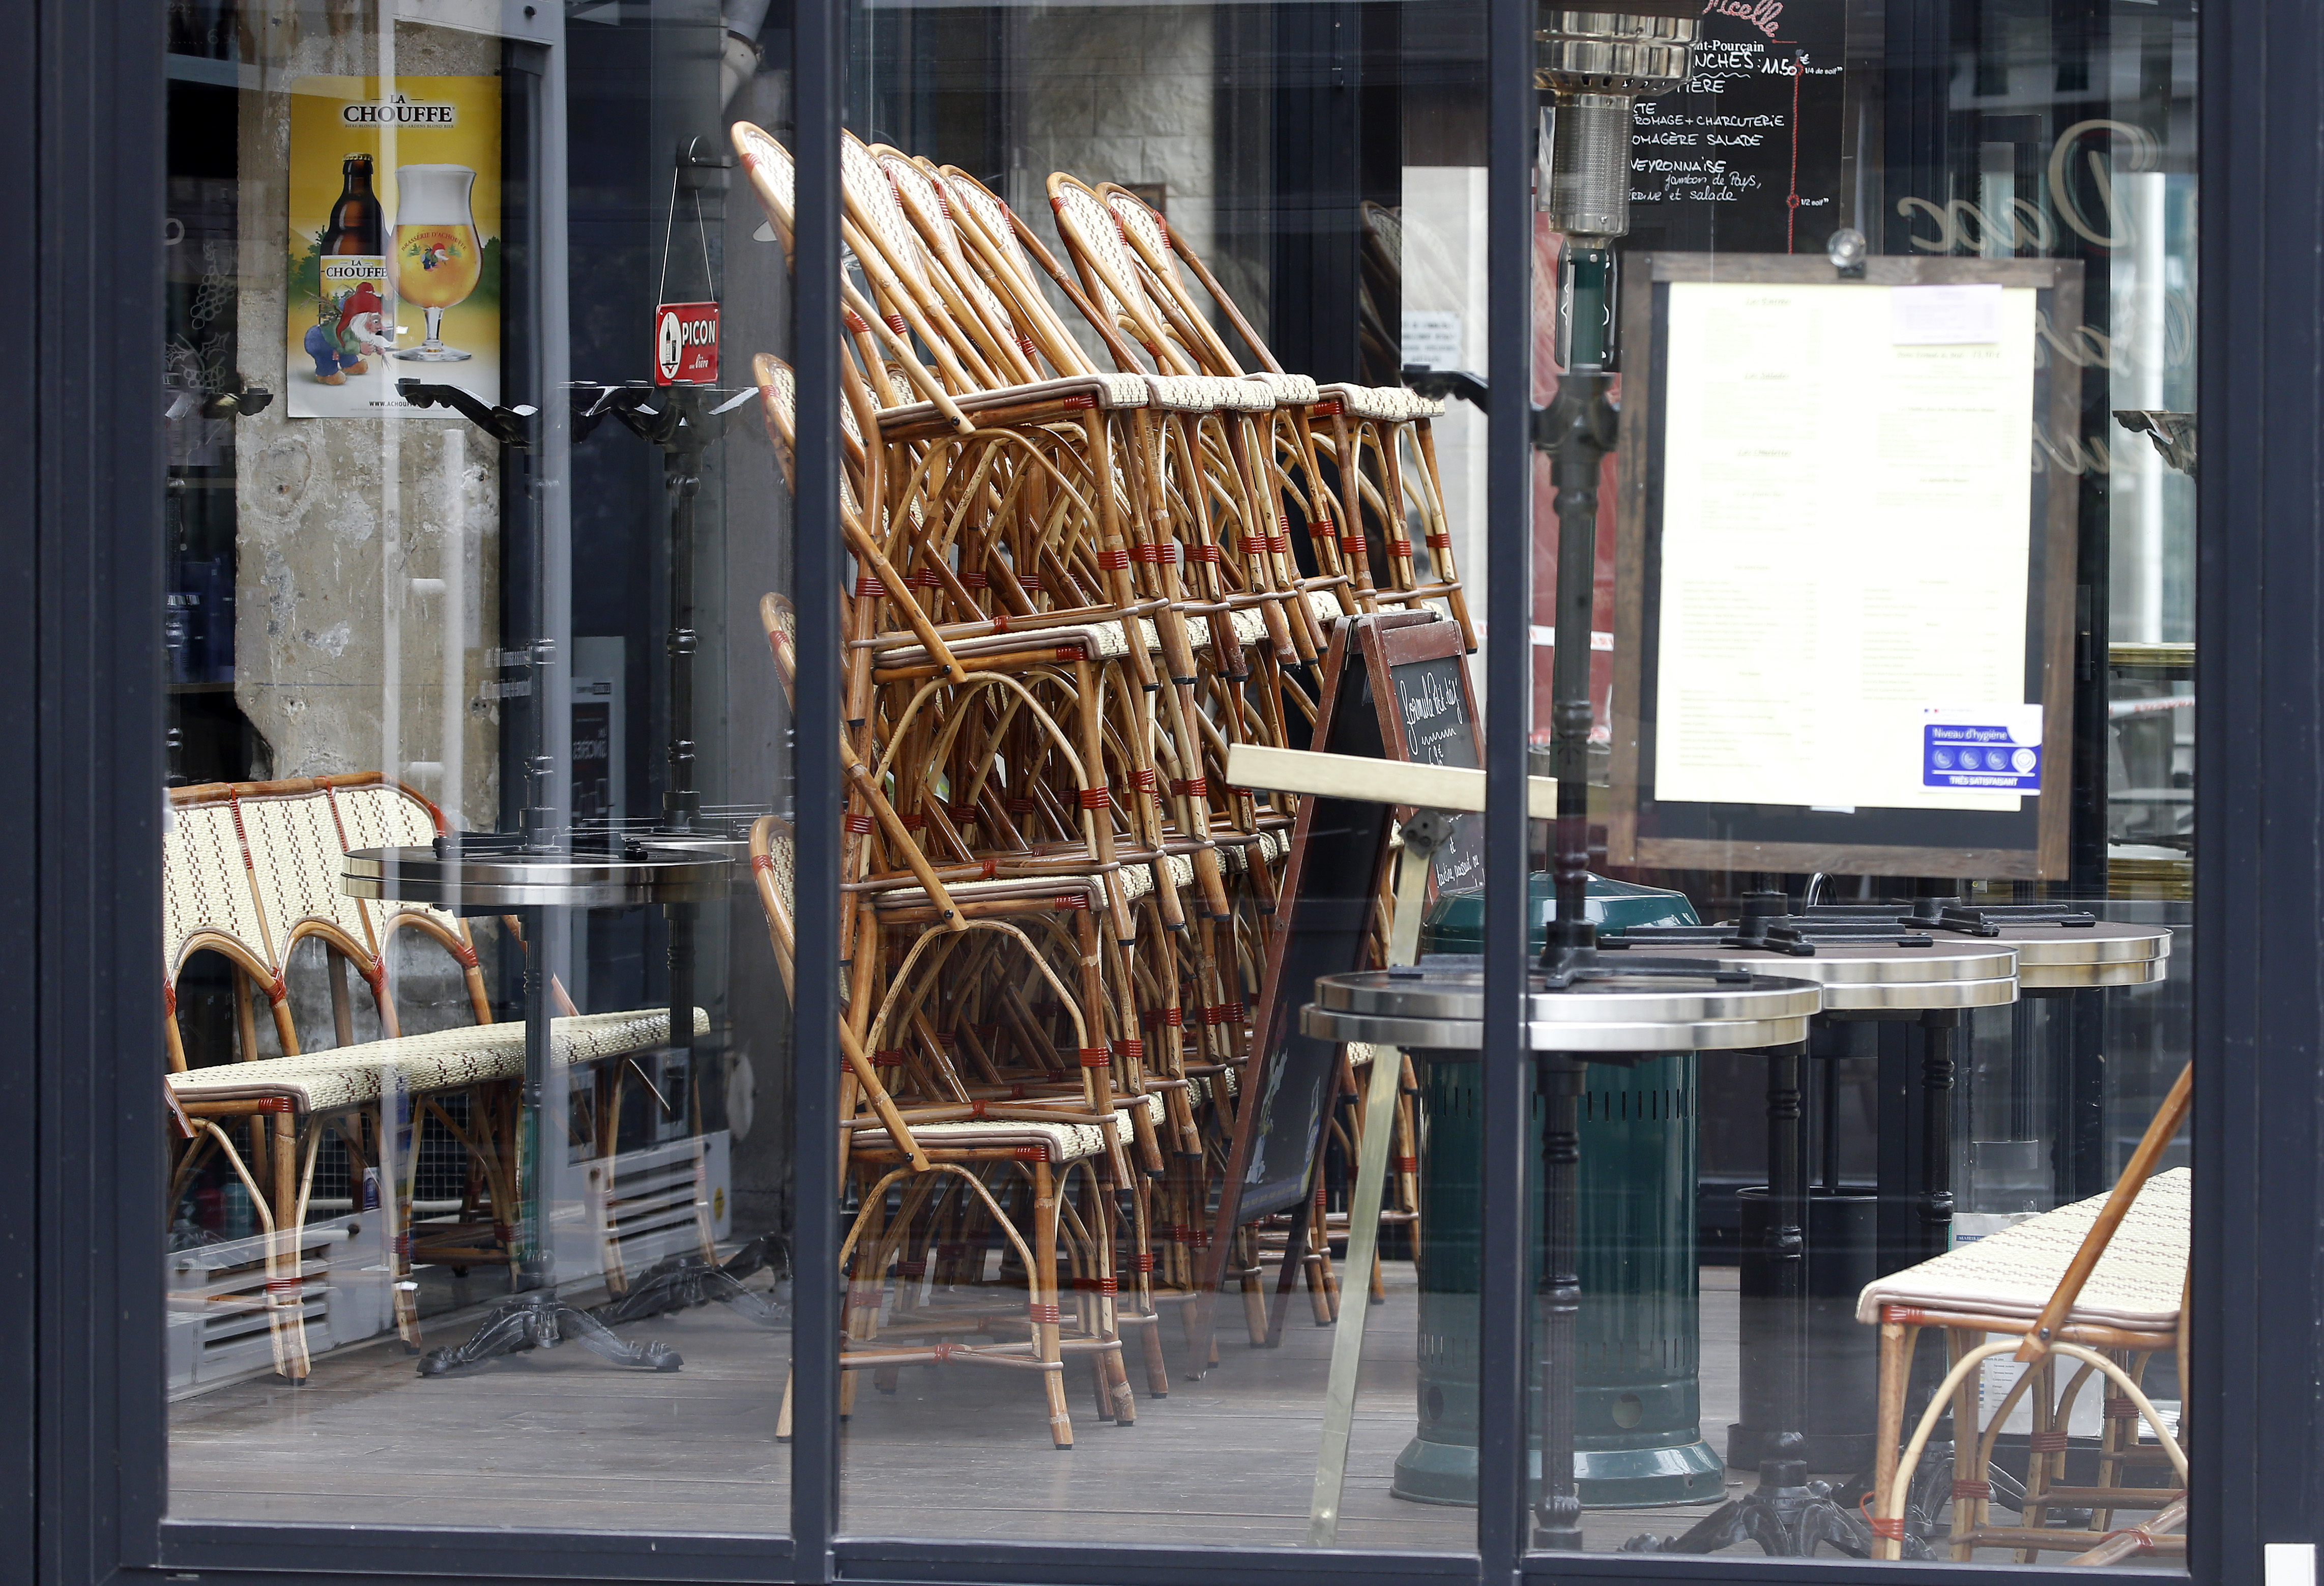 Stacked chairs inside a restaurant seen through the restaurant's window